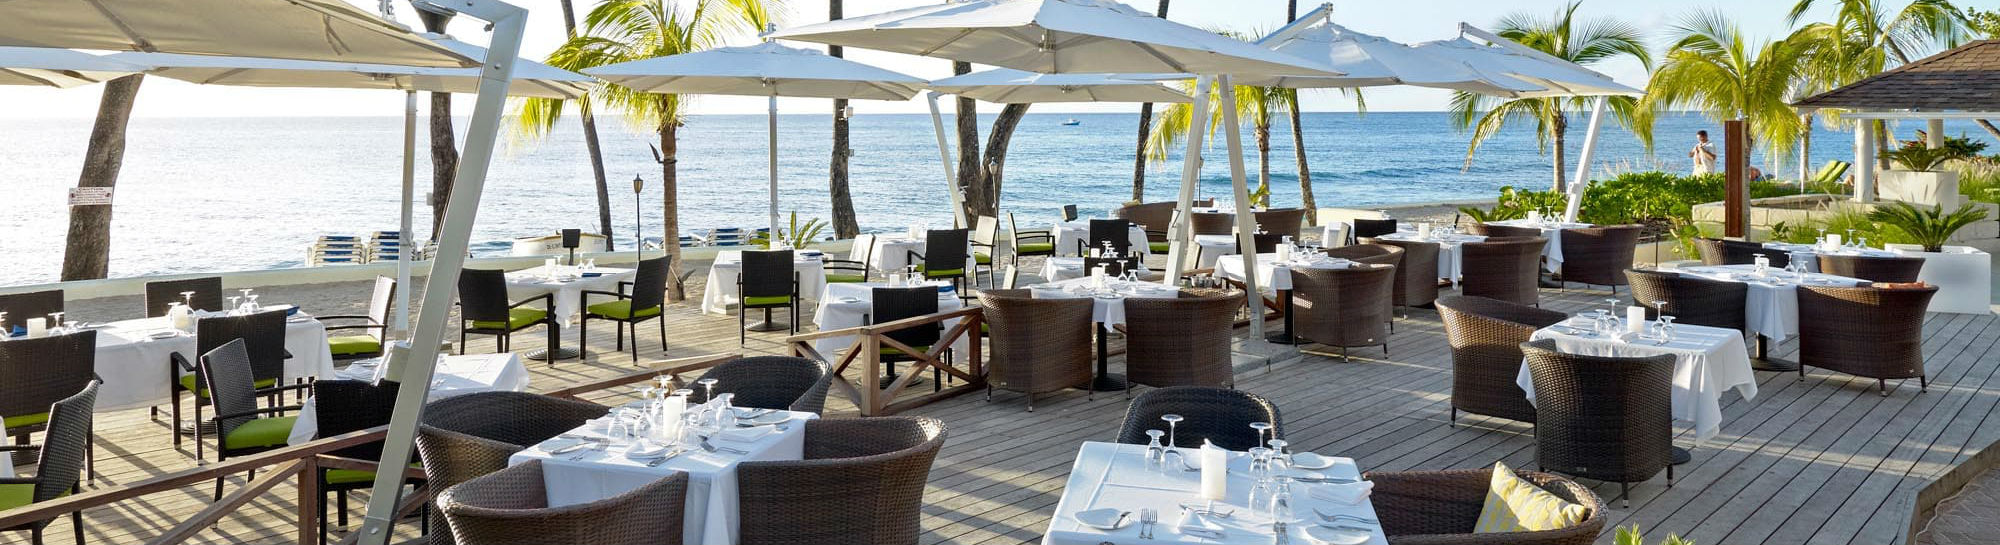 246 restaurant at the Tamarind by Elegant Hotels